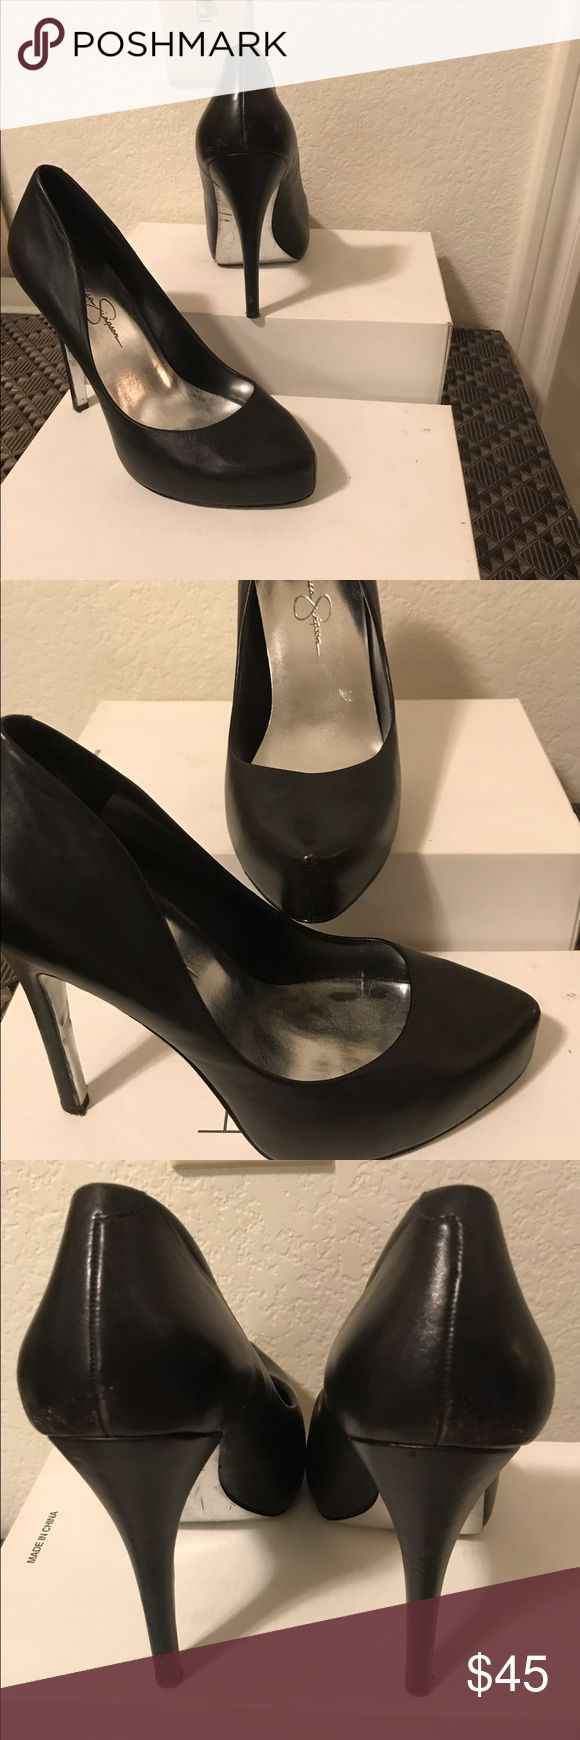 Teluride Pump by Jessica Simpson Sophisticated and Classic Black Pump to accentuate your work or play attire! Gently worn Jessica Simpson Shoes Heels